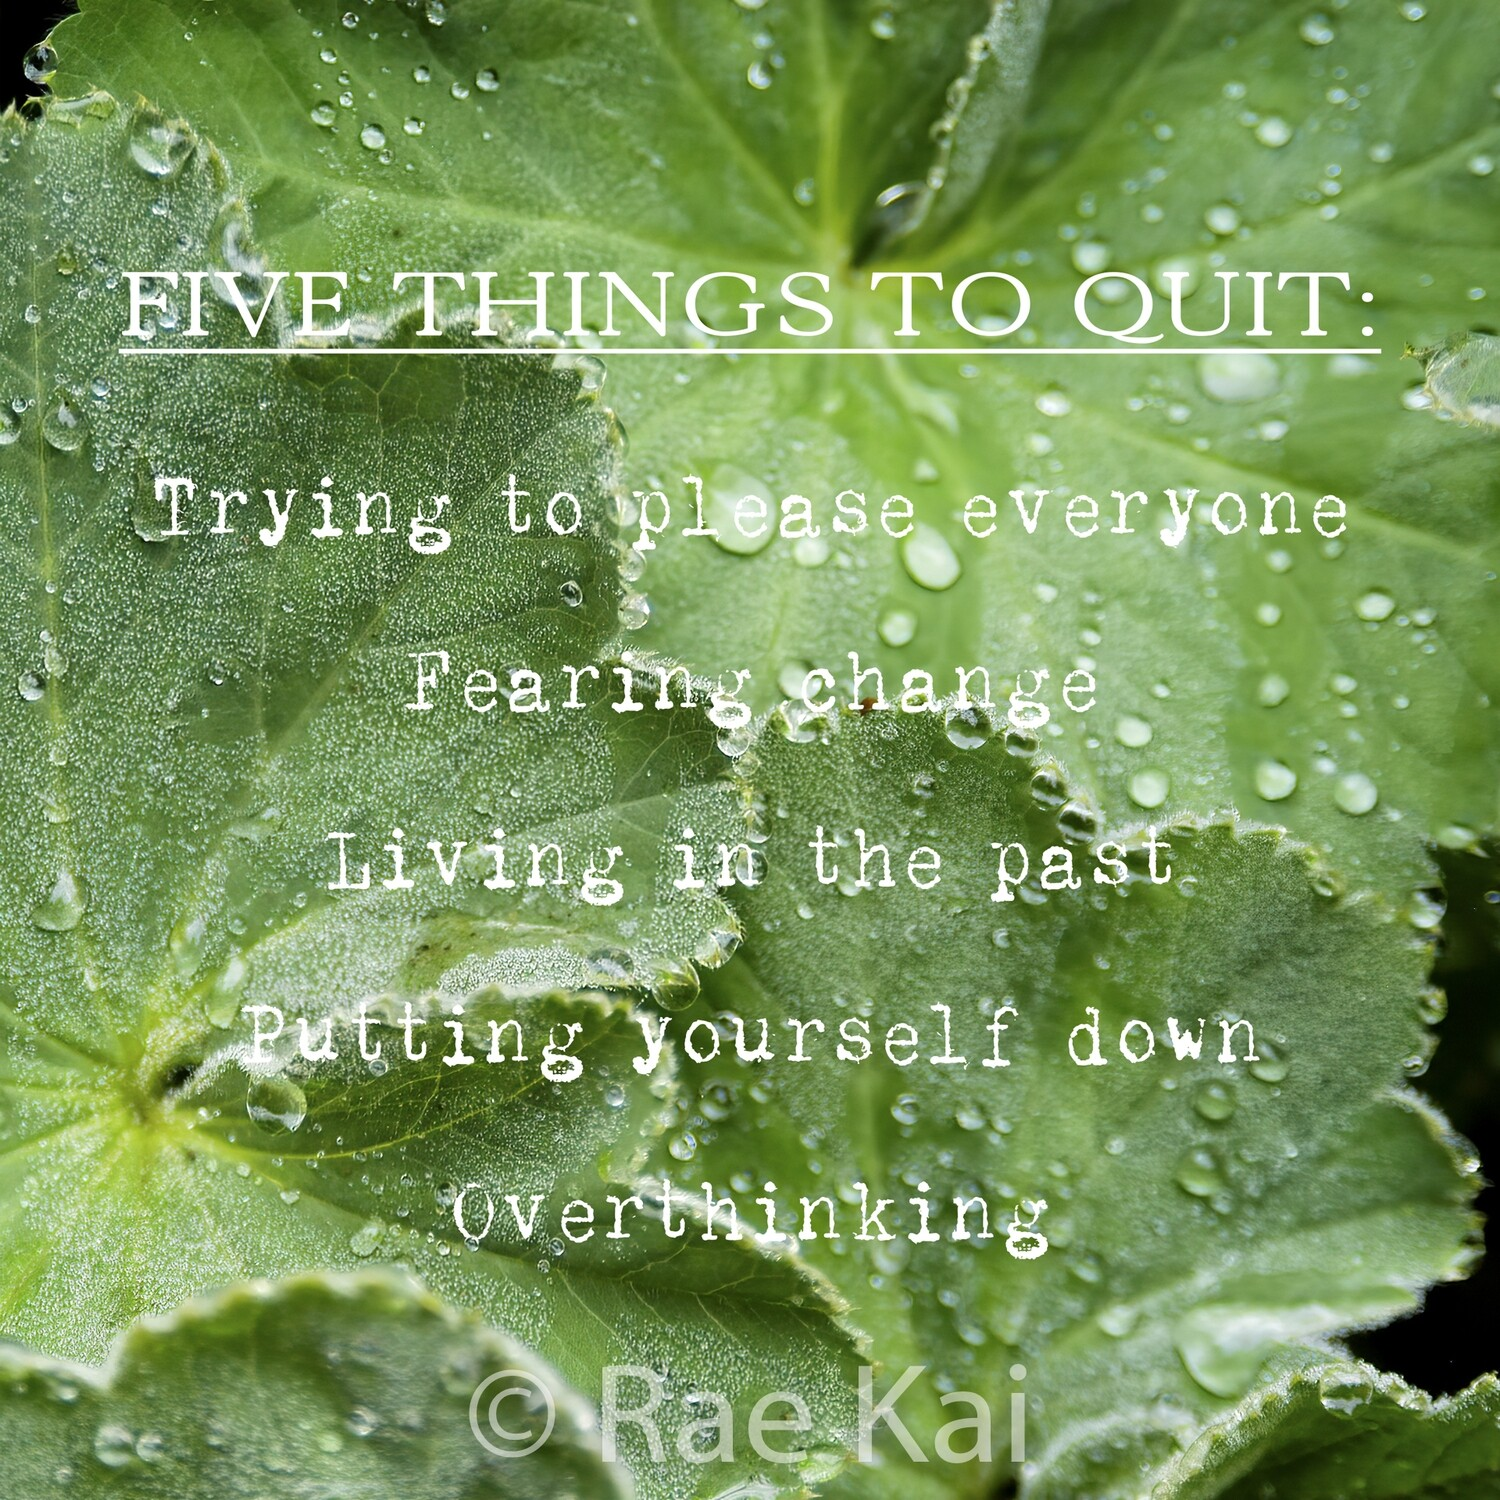 Five Things to Quit-Inspirational Square Photo